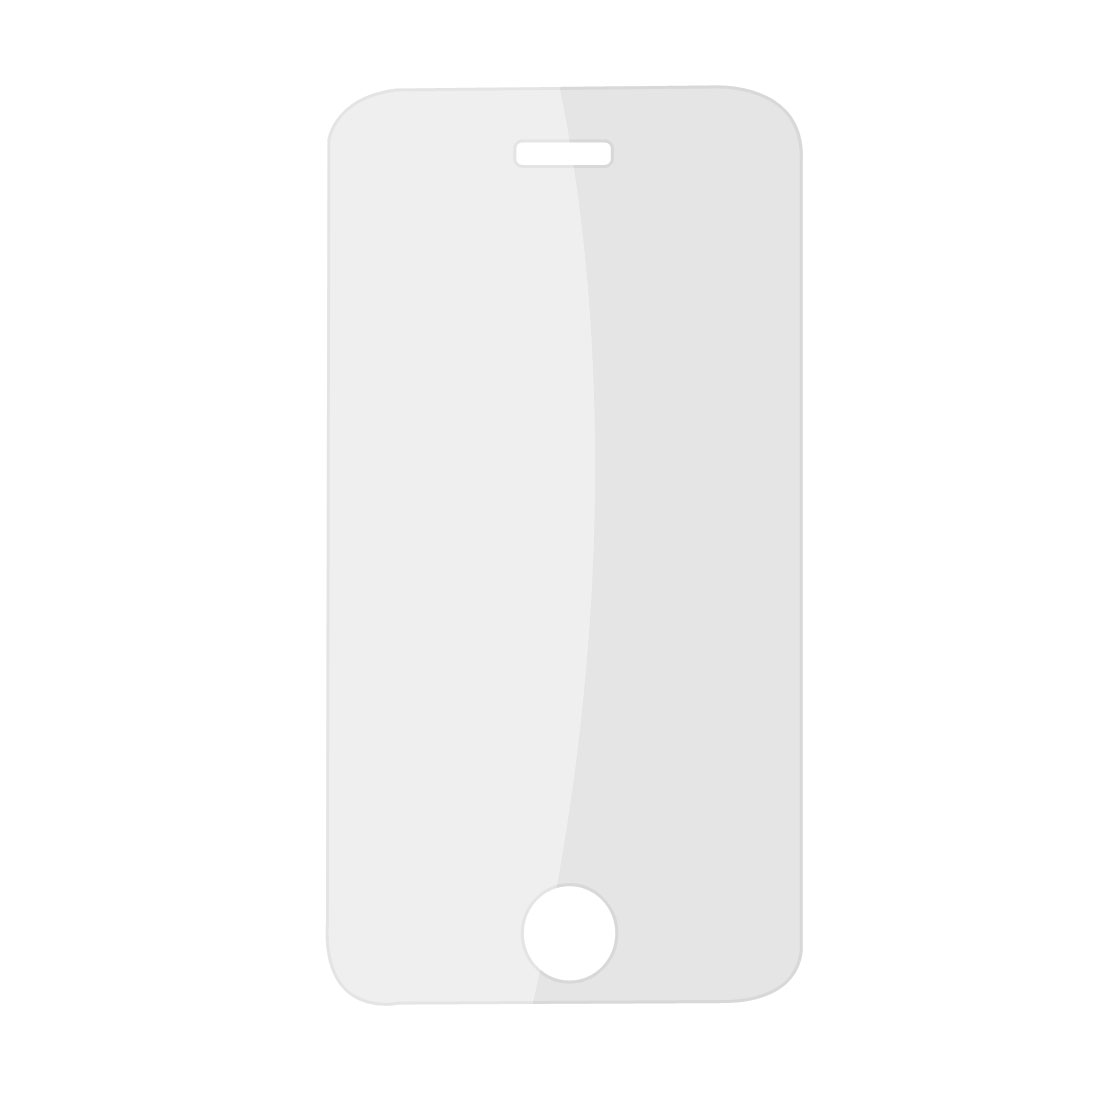 Clear Matte LCD Screen Guard Film Protector for iPhone 3 3G 3GS